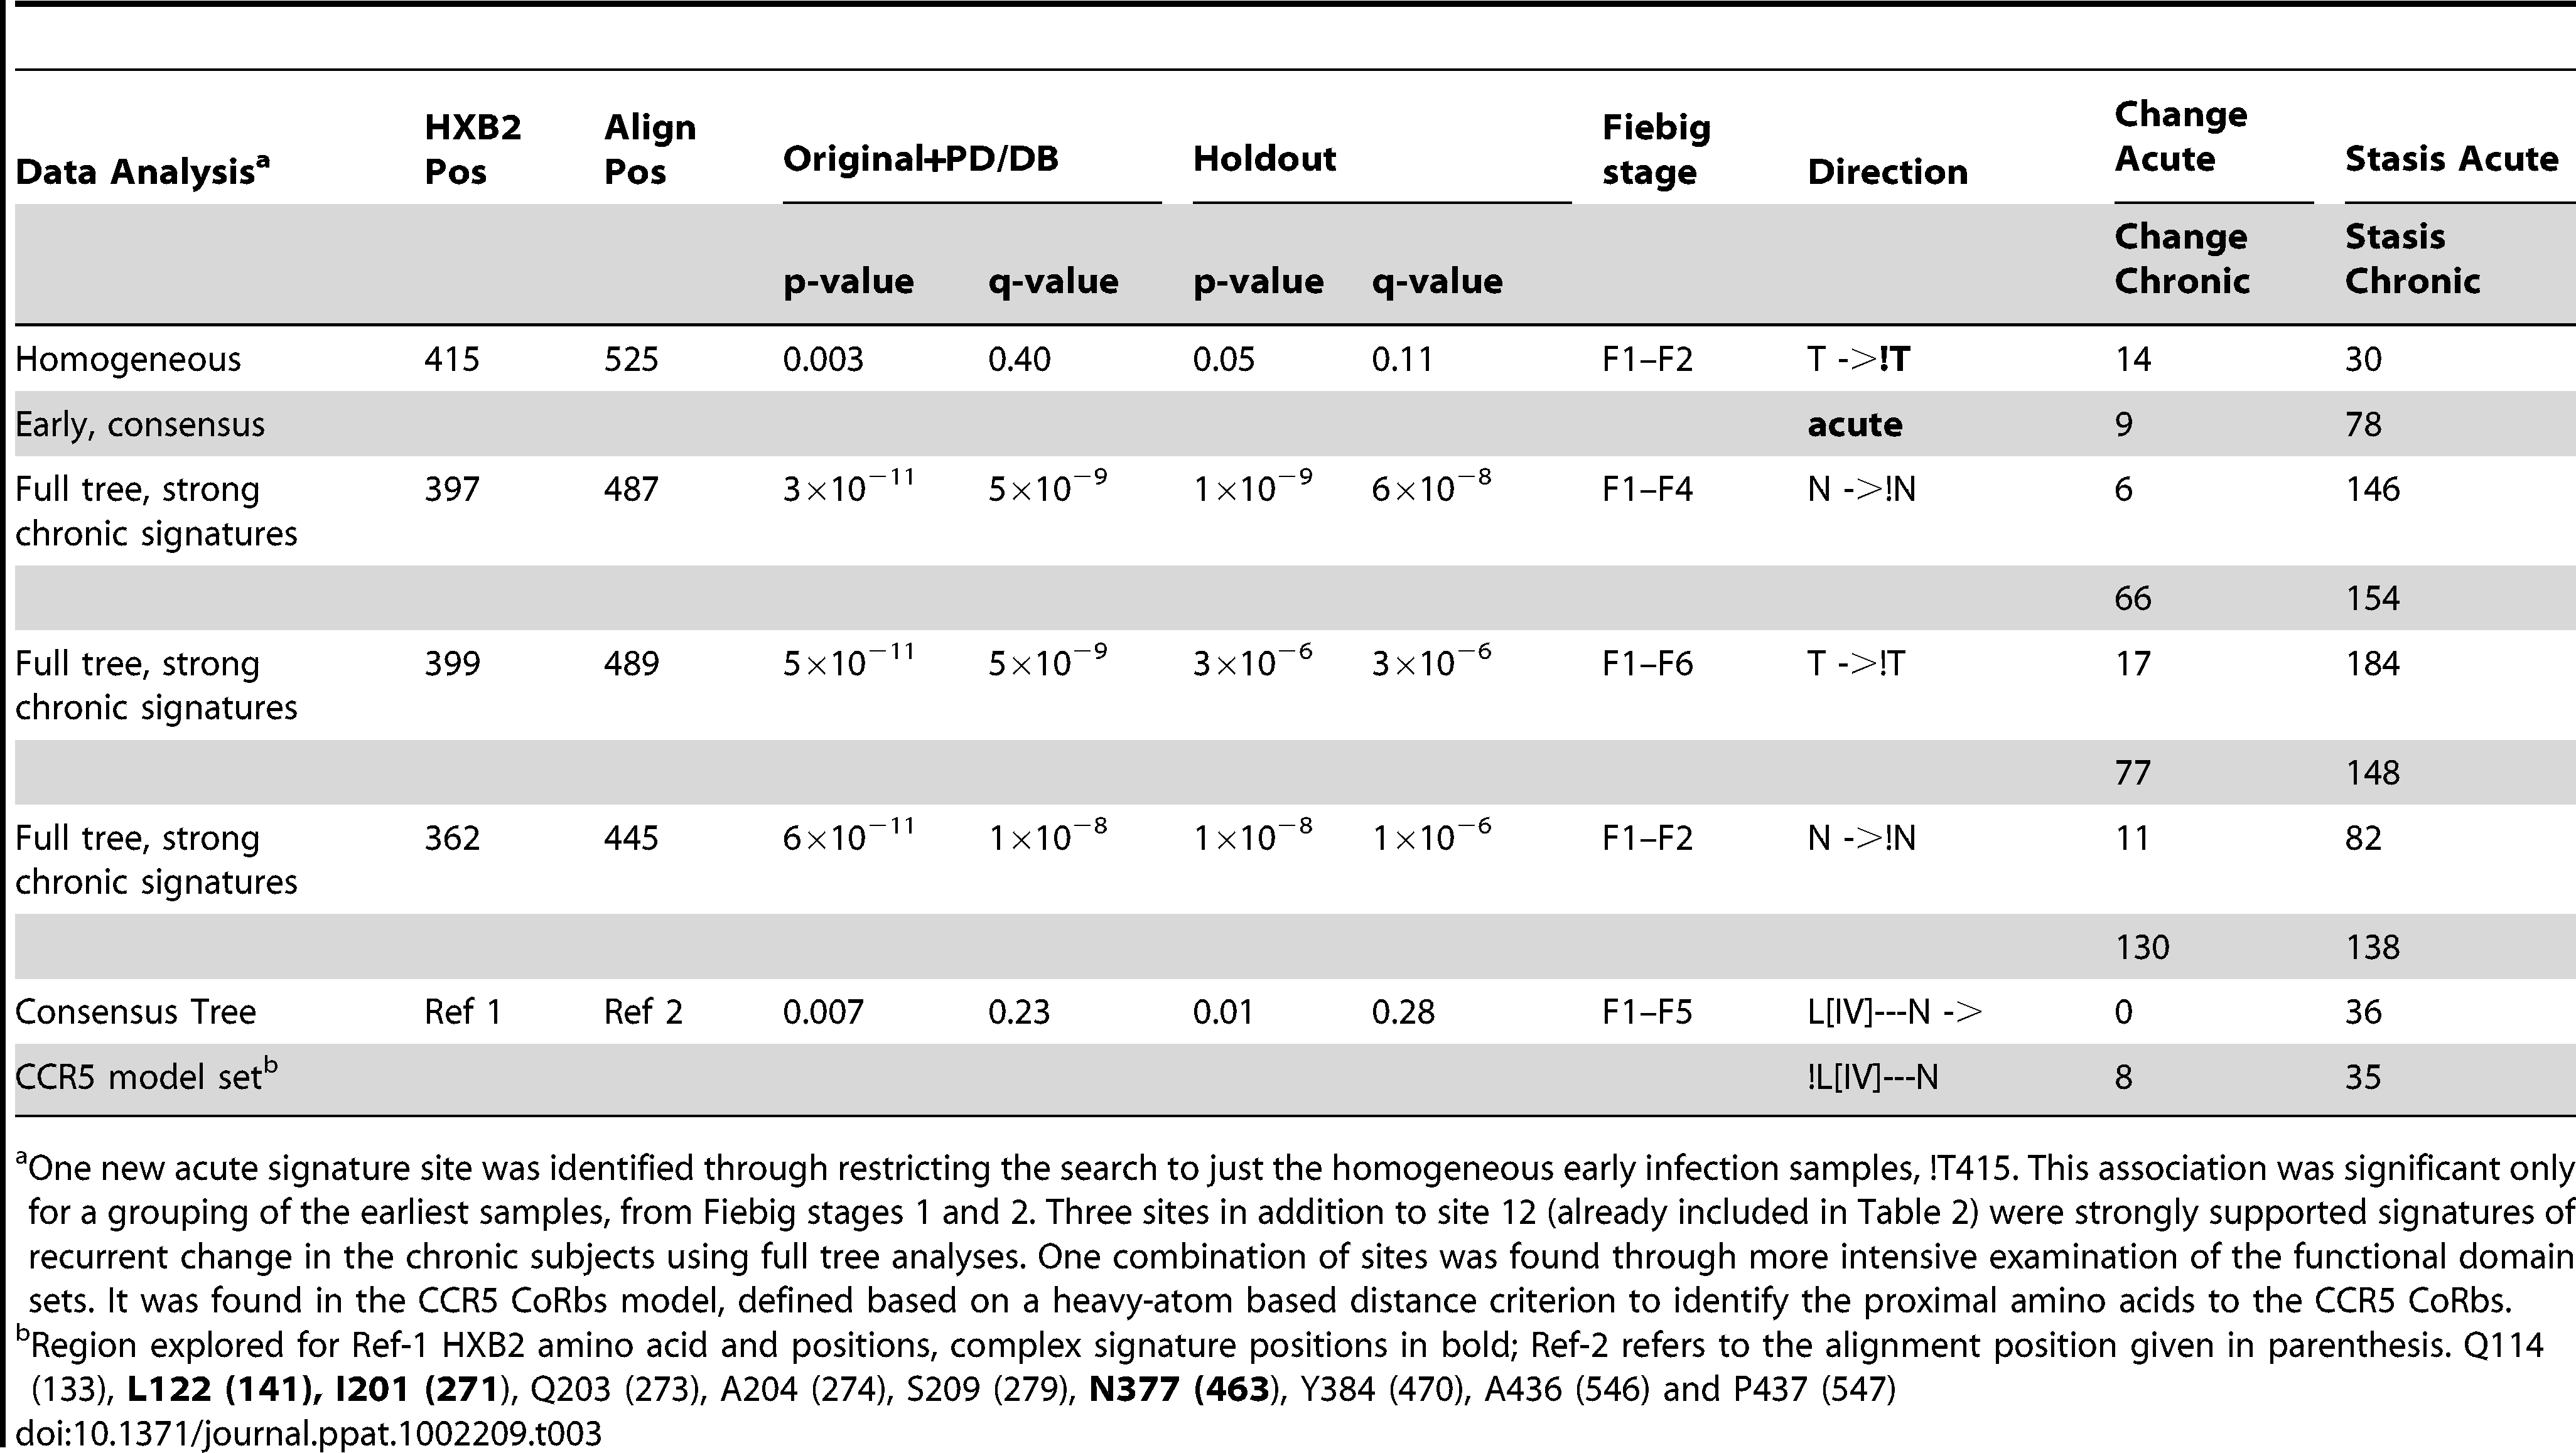 """Summary statistics additional signatures identified with additional searches, using the combined original and PD/DB sets to identify potential signatures and comparing to the holdout set. For legend see <em class=""""ref"""">table 2</em>."""